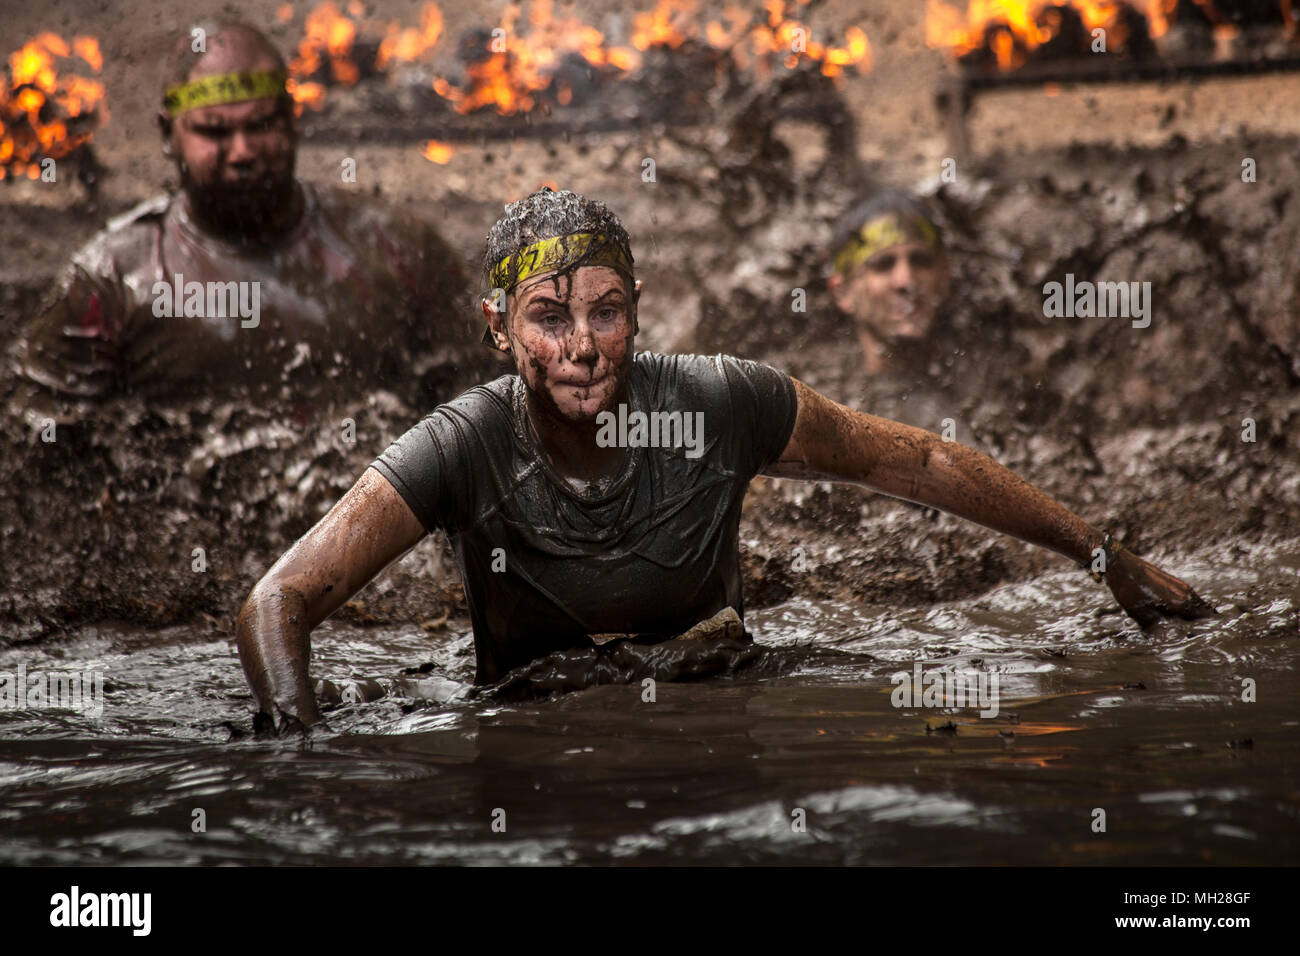 Contestants performing an extreme challenging assault course. - Stock Image